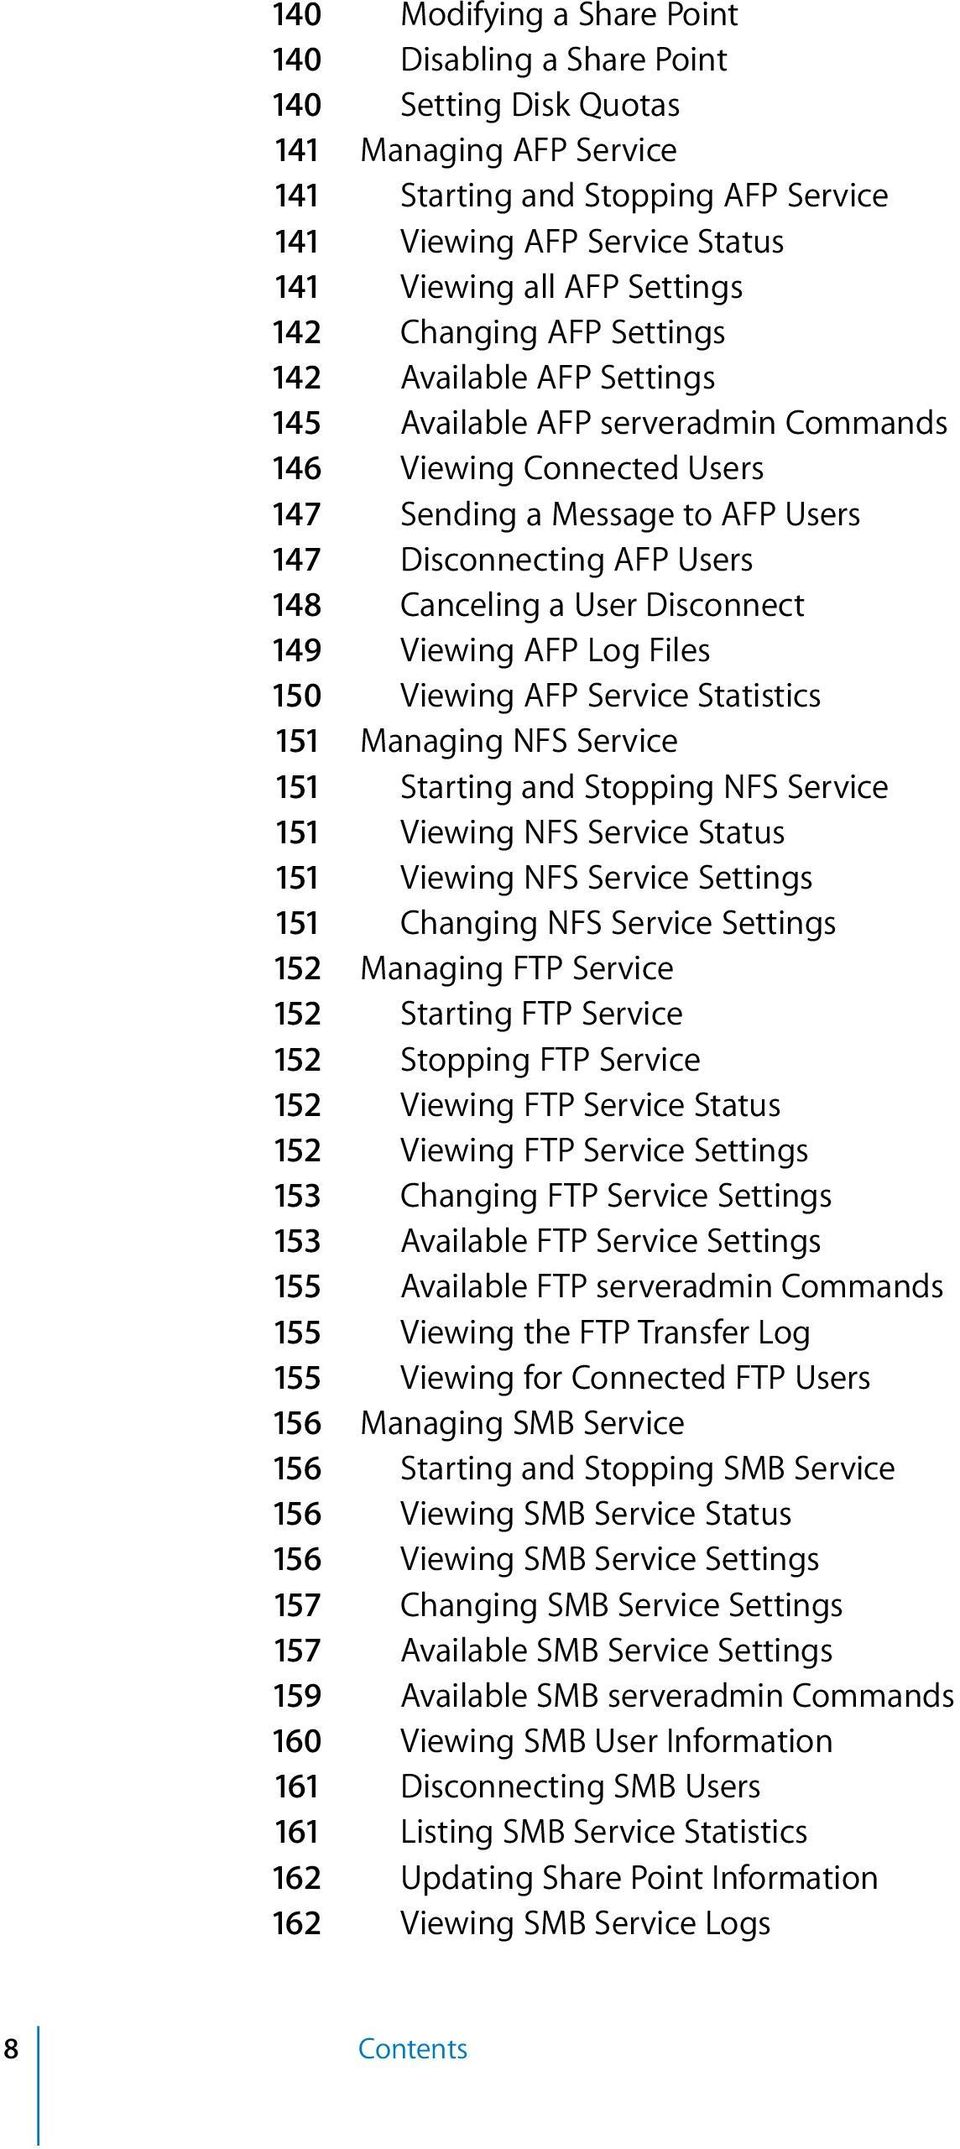 148 Canceling a User Disconnect 149 Viewing AFP Log Files 150 Viewing AFP Service Statistics 151 Managing NFS Service 151 Starting and Stopping NFS Service 151 Viewing NFS Service Status 151 Viewing